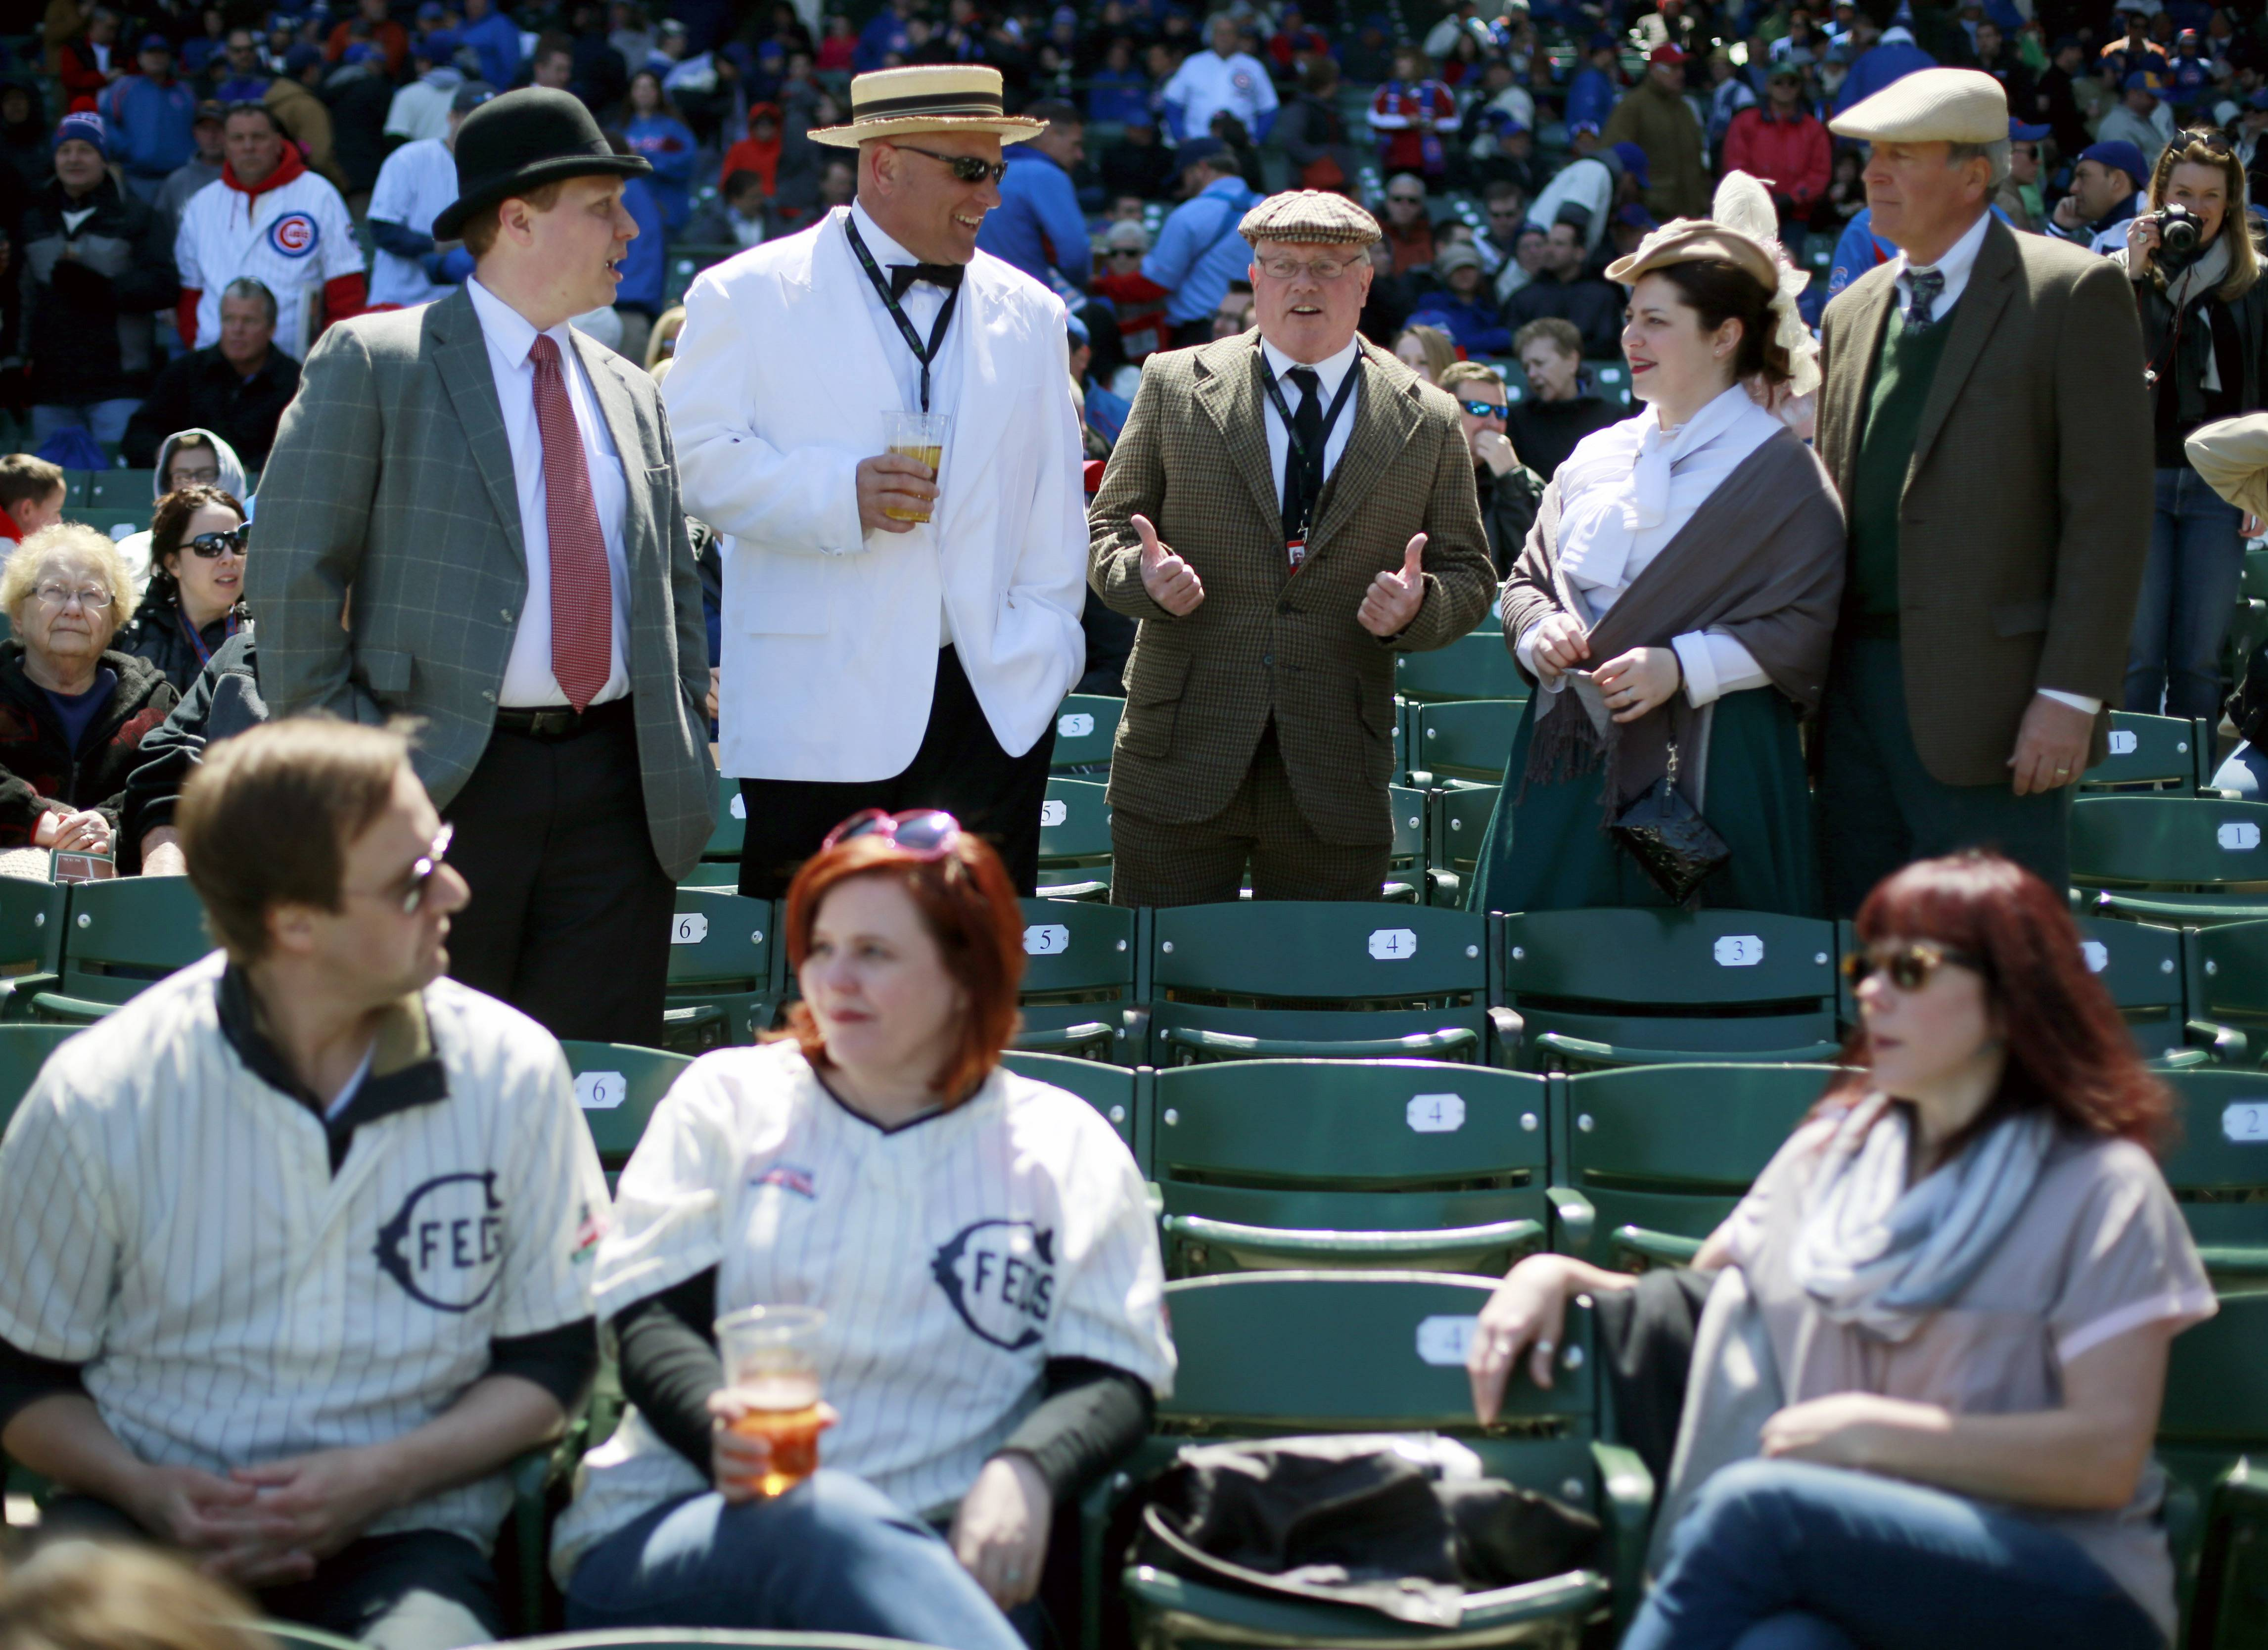 Some baseball fans dressed in period clothes, top, and others donned the replica 1914 Chicago Federals jersey on Wednesday at the 100th anniversary of the first baseball game at Wrigley Field. Several greats from Cubs and Bears history also attended the celebration.